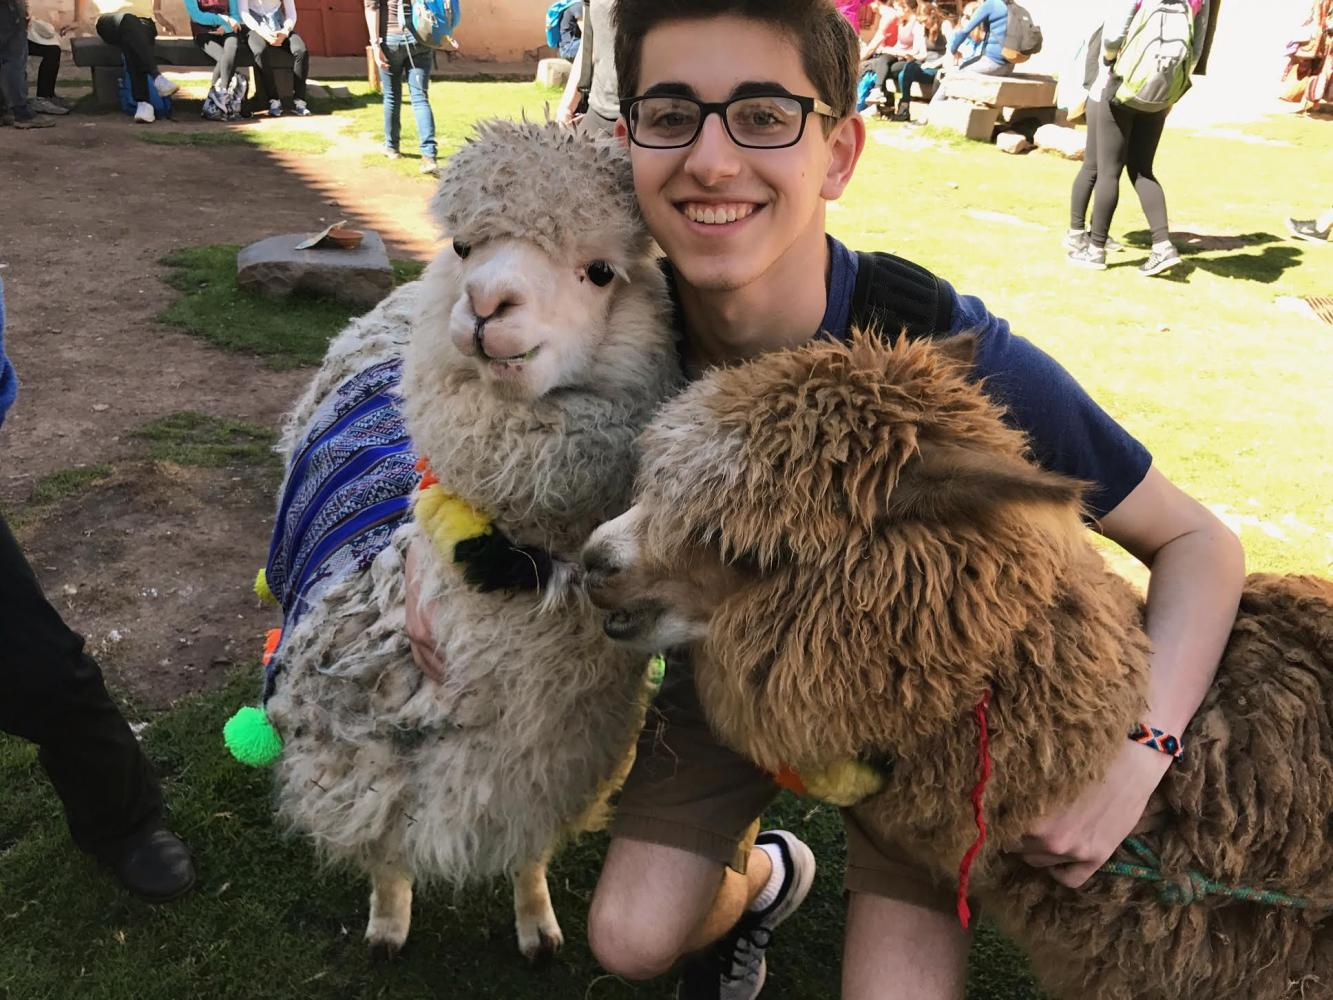 Senior Rudy Malcolm poses with two alpacas in one of the farms on the countryside of Cusco.